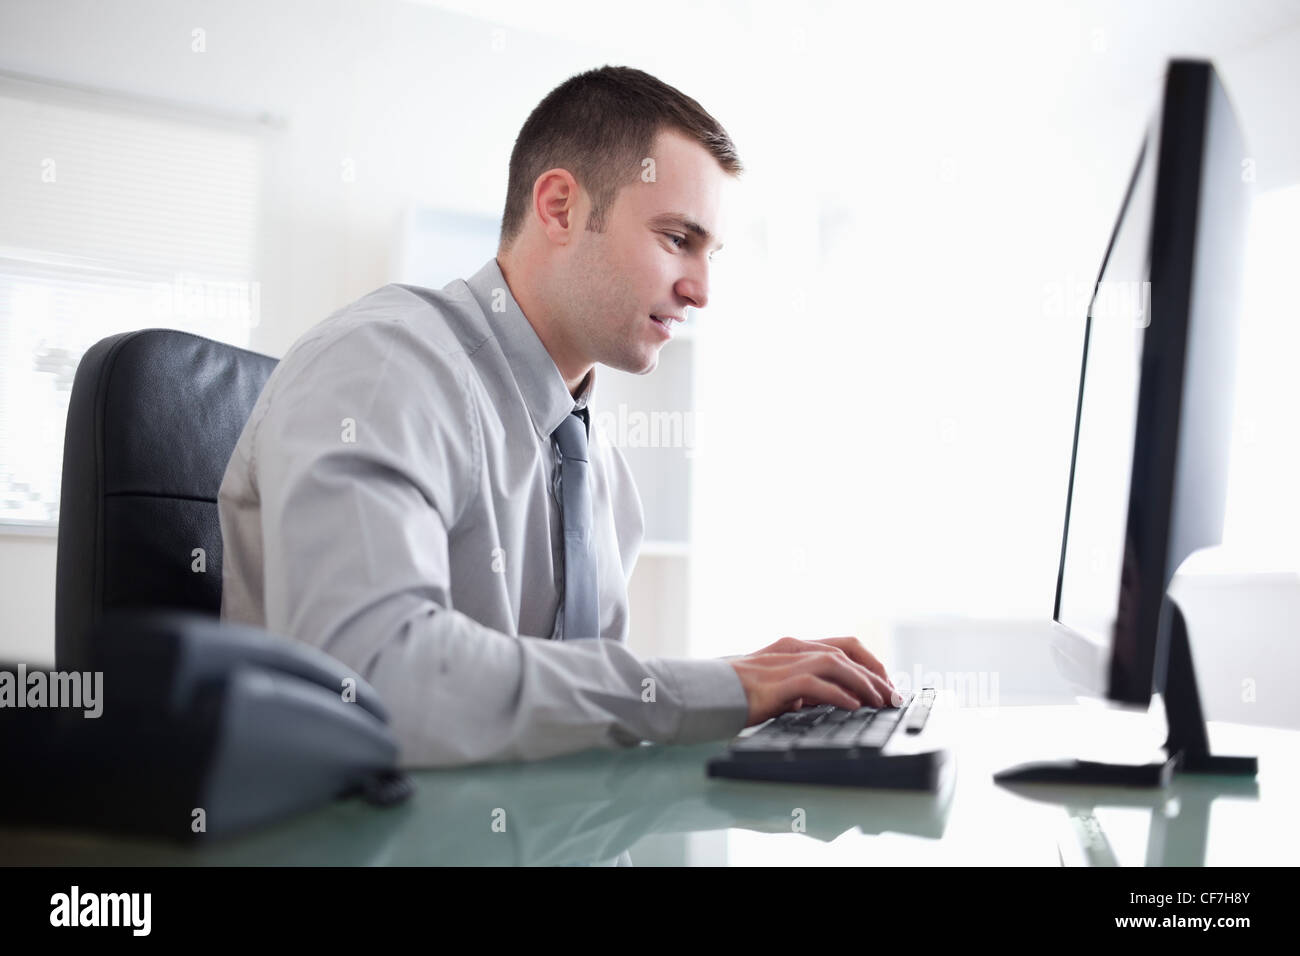 Businessman working concentrated on his computer - Stock Image